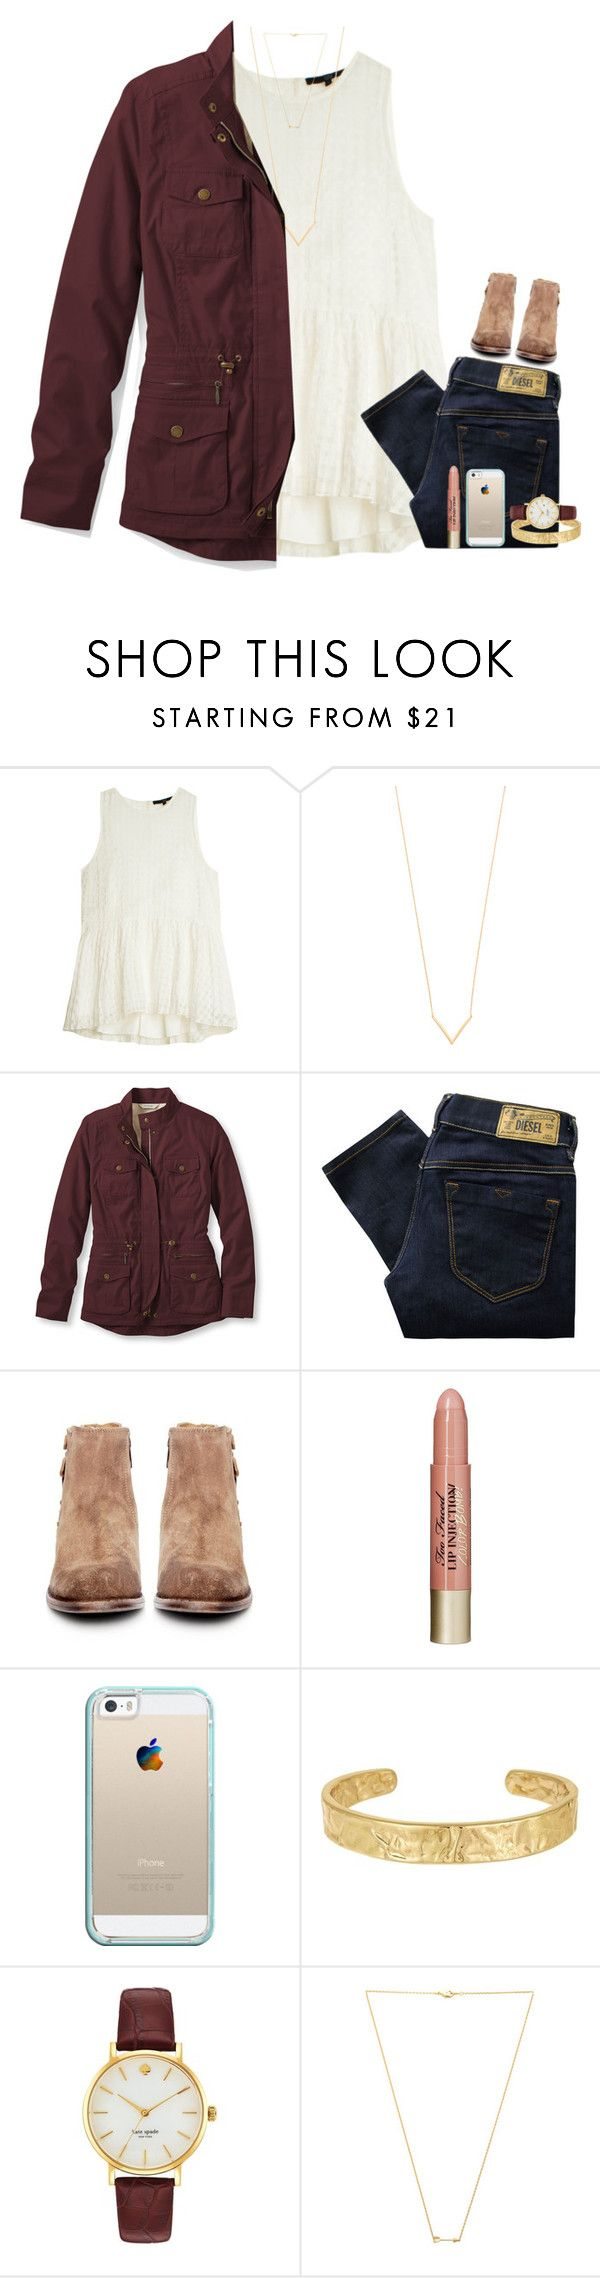 """""""tobymac!!"""" by hmcdaniel01 ❤ liked on Polyvore featuring TIBI, Jennifer Zeuner, L.L.Bean, Diesel, H by Hudson, Too Faced Cosmetics, Casetify, Sam Edelman, Kate Spade and Wanderlust + Co"""